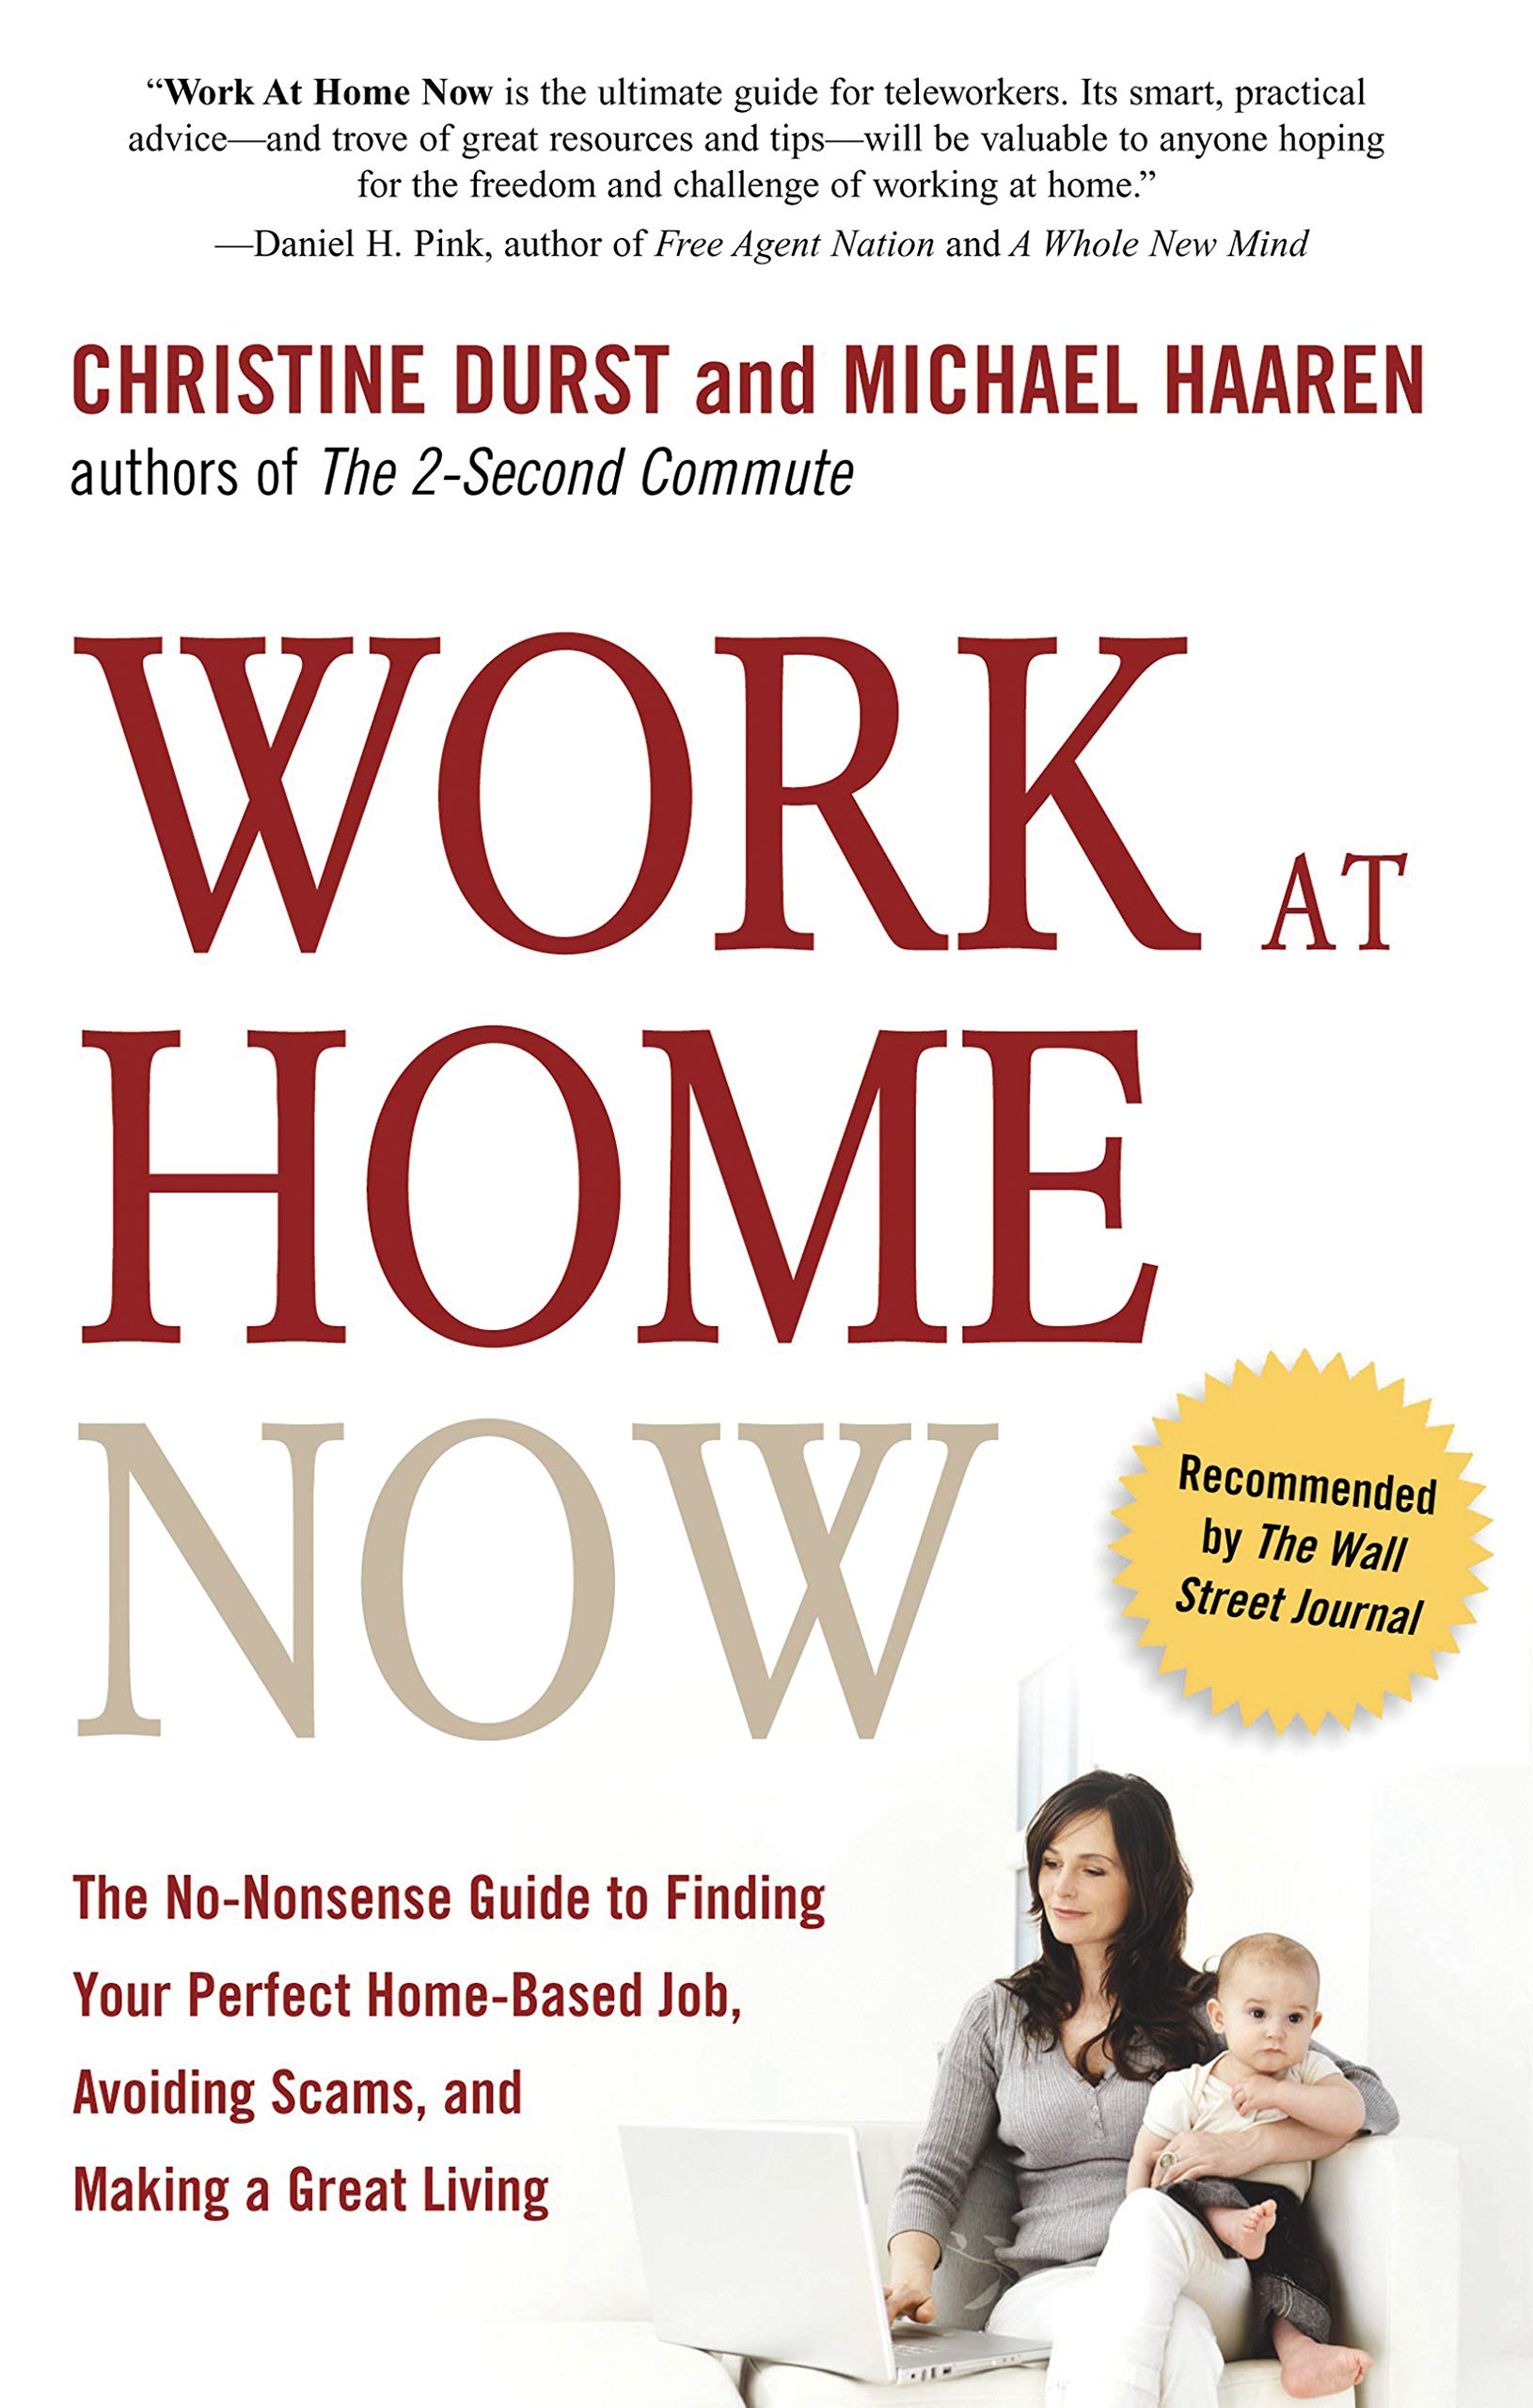 Work At Home Now The No Nonsense Guide To Finding Your Perfect Home Based Job Avoiding Scams And Making A Great Living Durst Christine Haaren Michael 9781601630919 Amazon Com Books